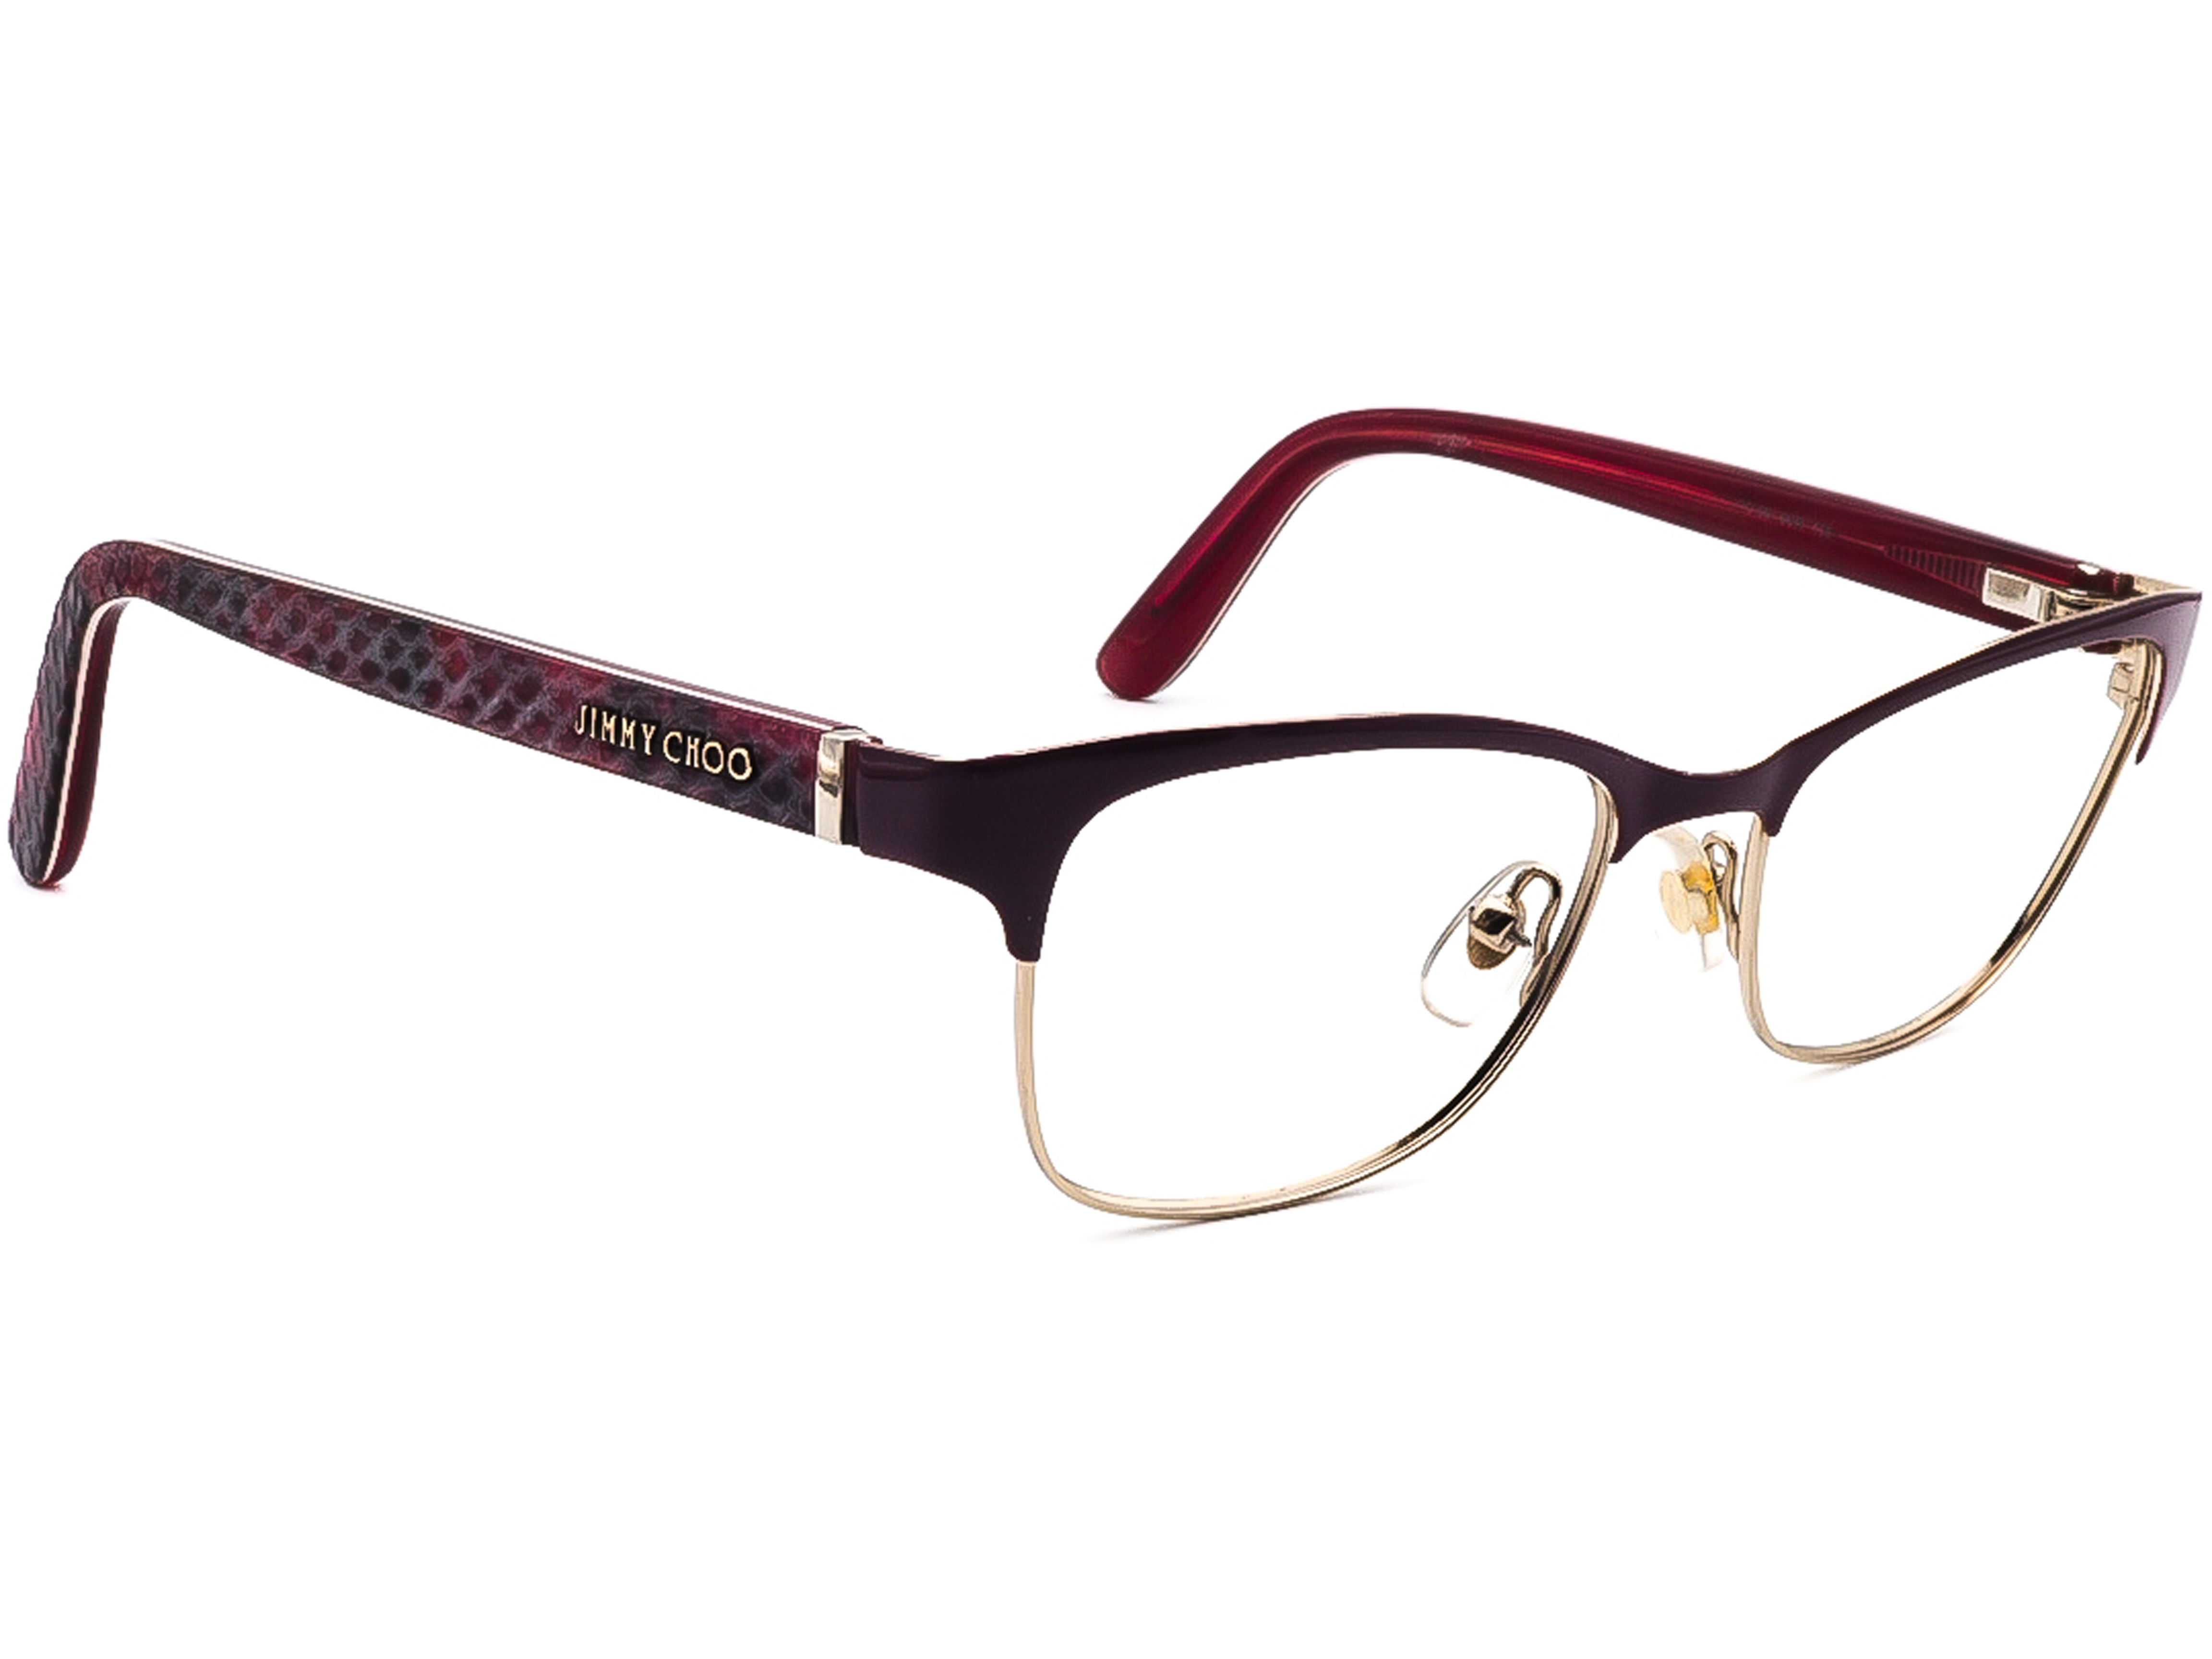 Jimmy Choo 99 6UR Eyeglasses